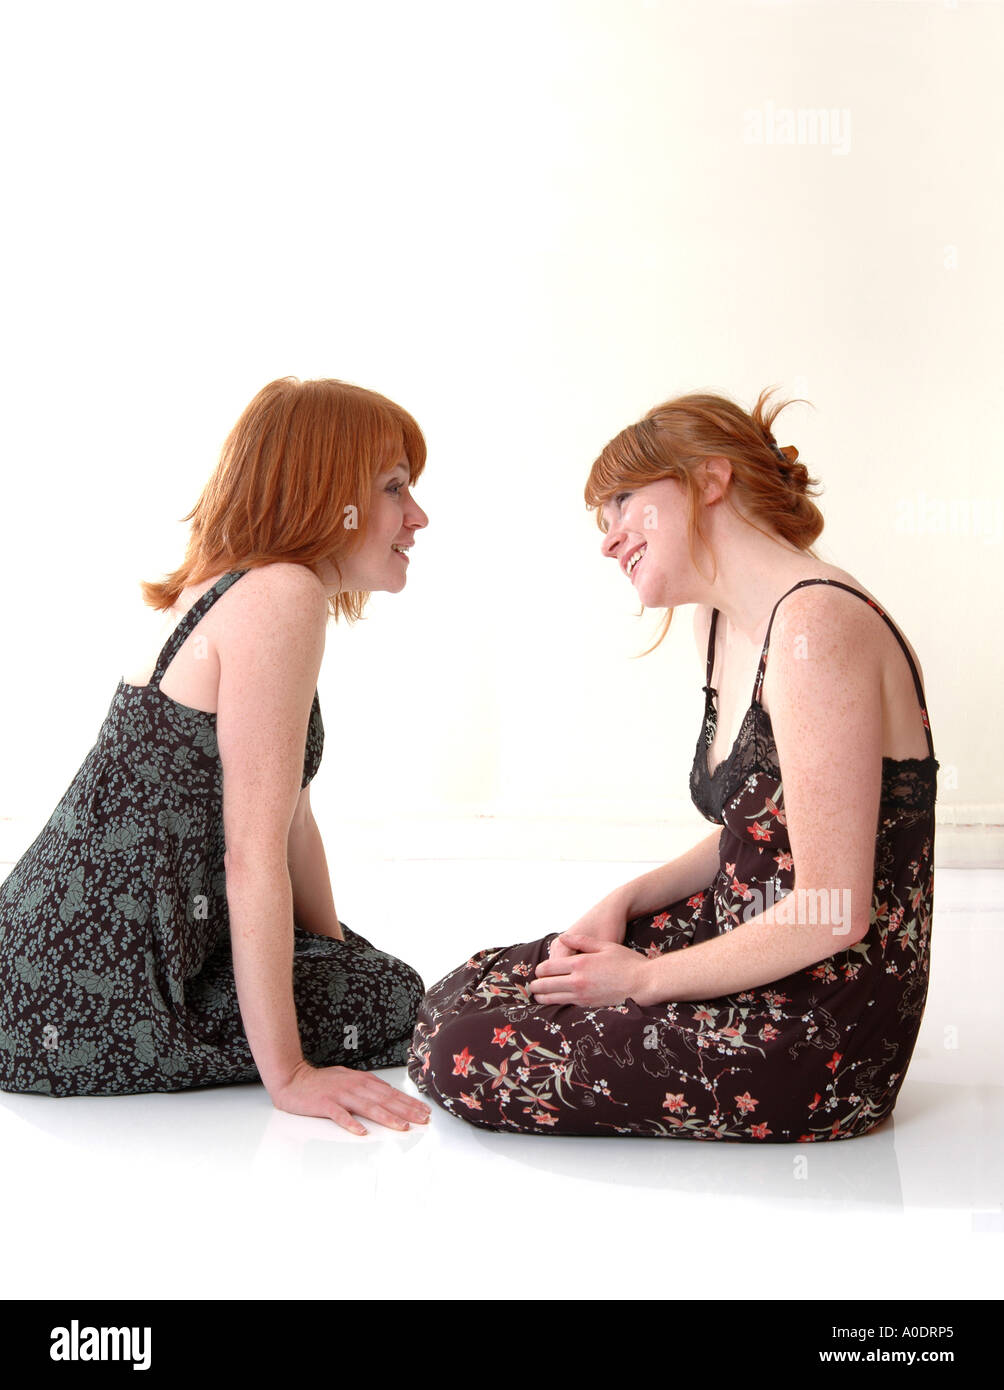 Twin redheaded sisters 2 - Stock Image